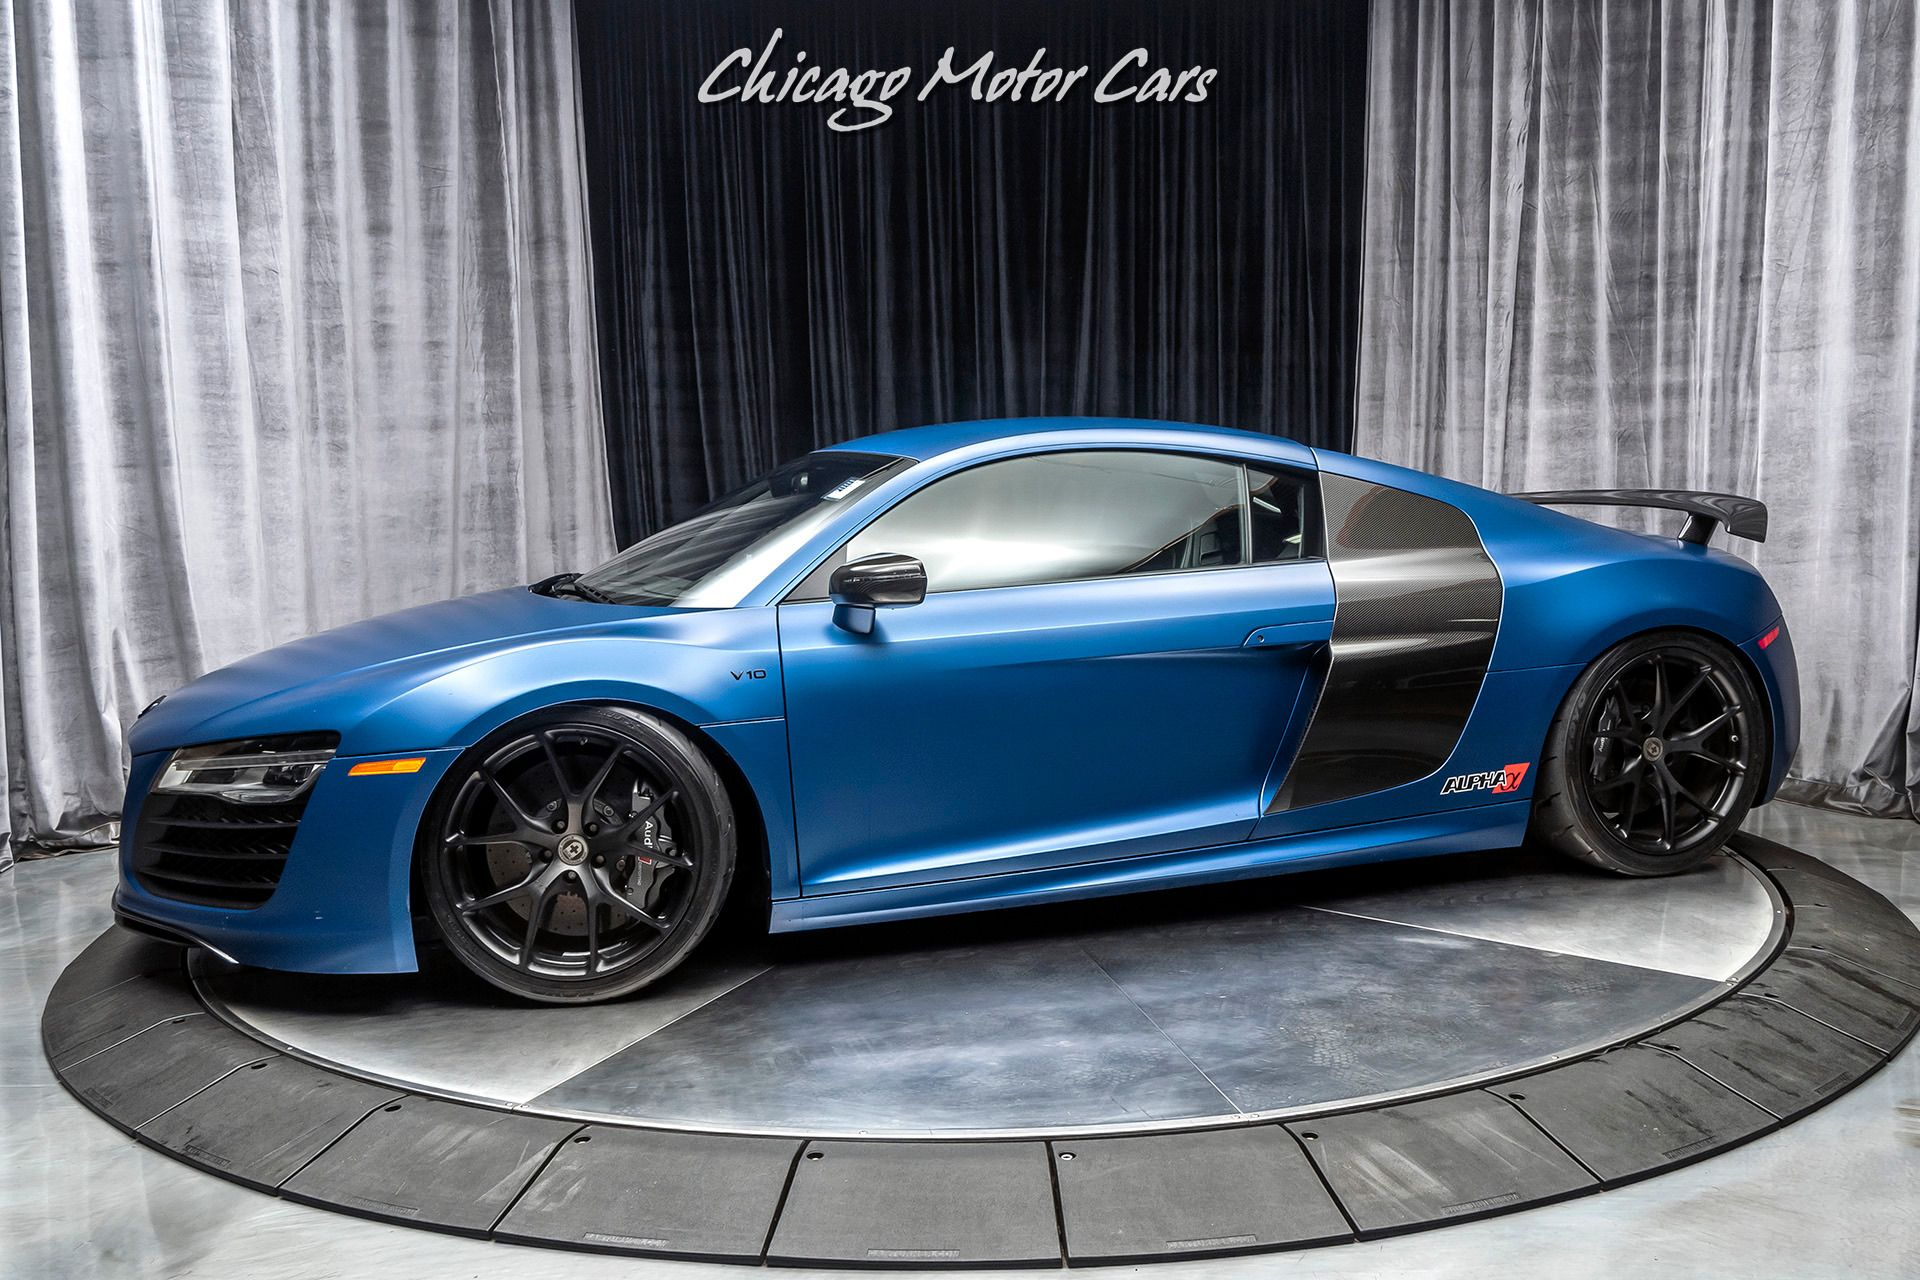 Used 2014 Audi R8 V10 Plus Quattro S Tronic Coupe 1250 Hp Ams Twin Turbo Built For Sale Chicago Motor Cars In 2020 Twin Turbo Audi R8 V10 Plus Audi